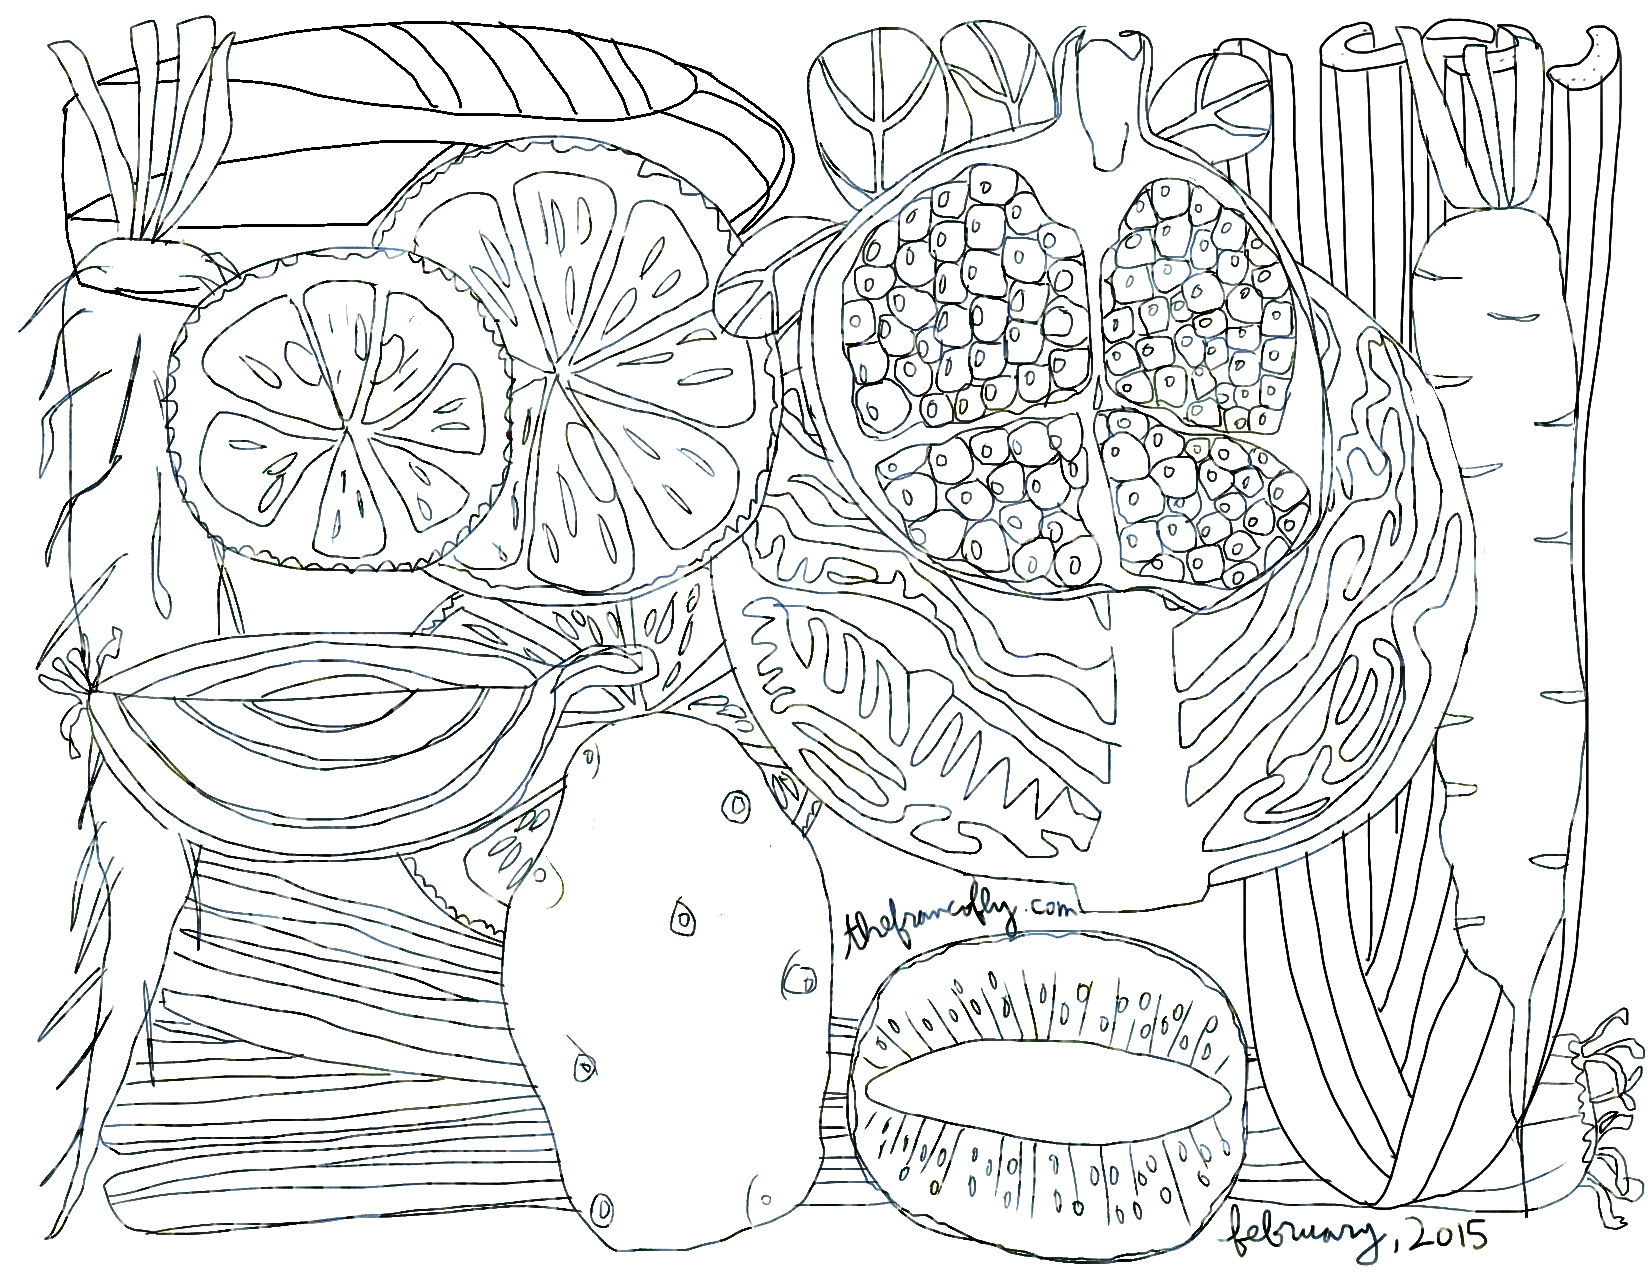 free coloring page – thefrancofly